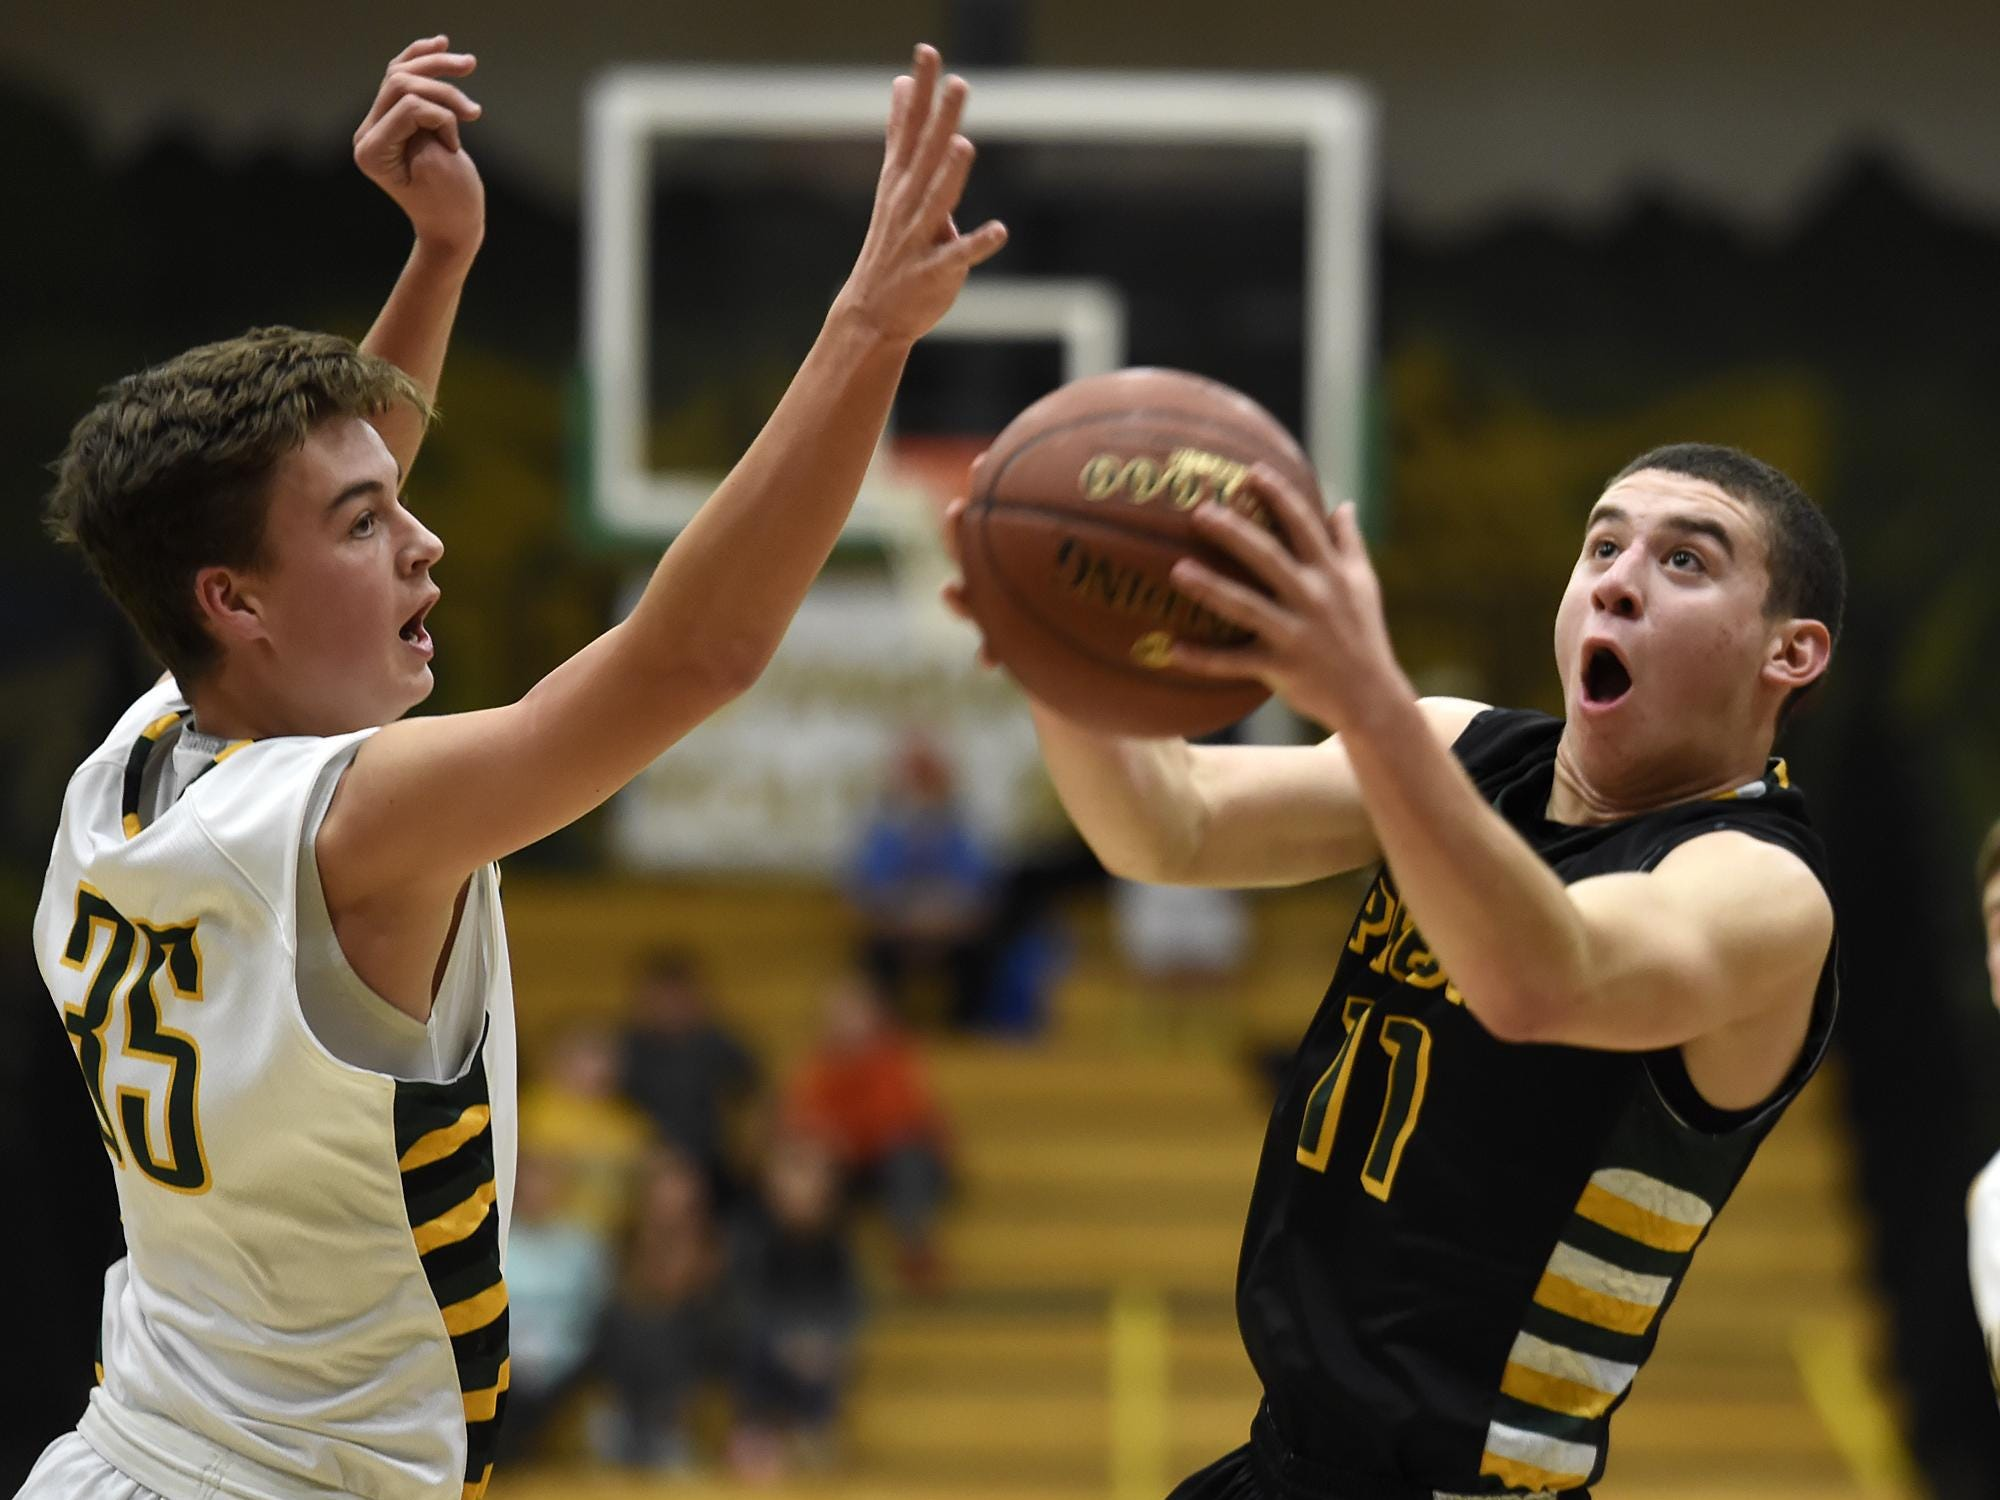 Green Bay Preble's Griffin Summers (11) takes a shot past Ashwaubenon's Anthony Guarascio (35) in the first half during Thursday night's boys basketball game at Ashwaubenon High School. The Hornets won the FRCC opener 48-31.